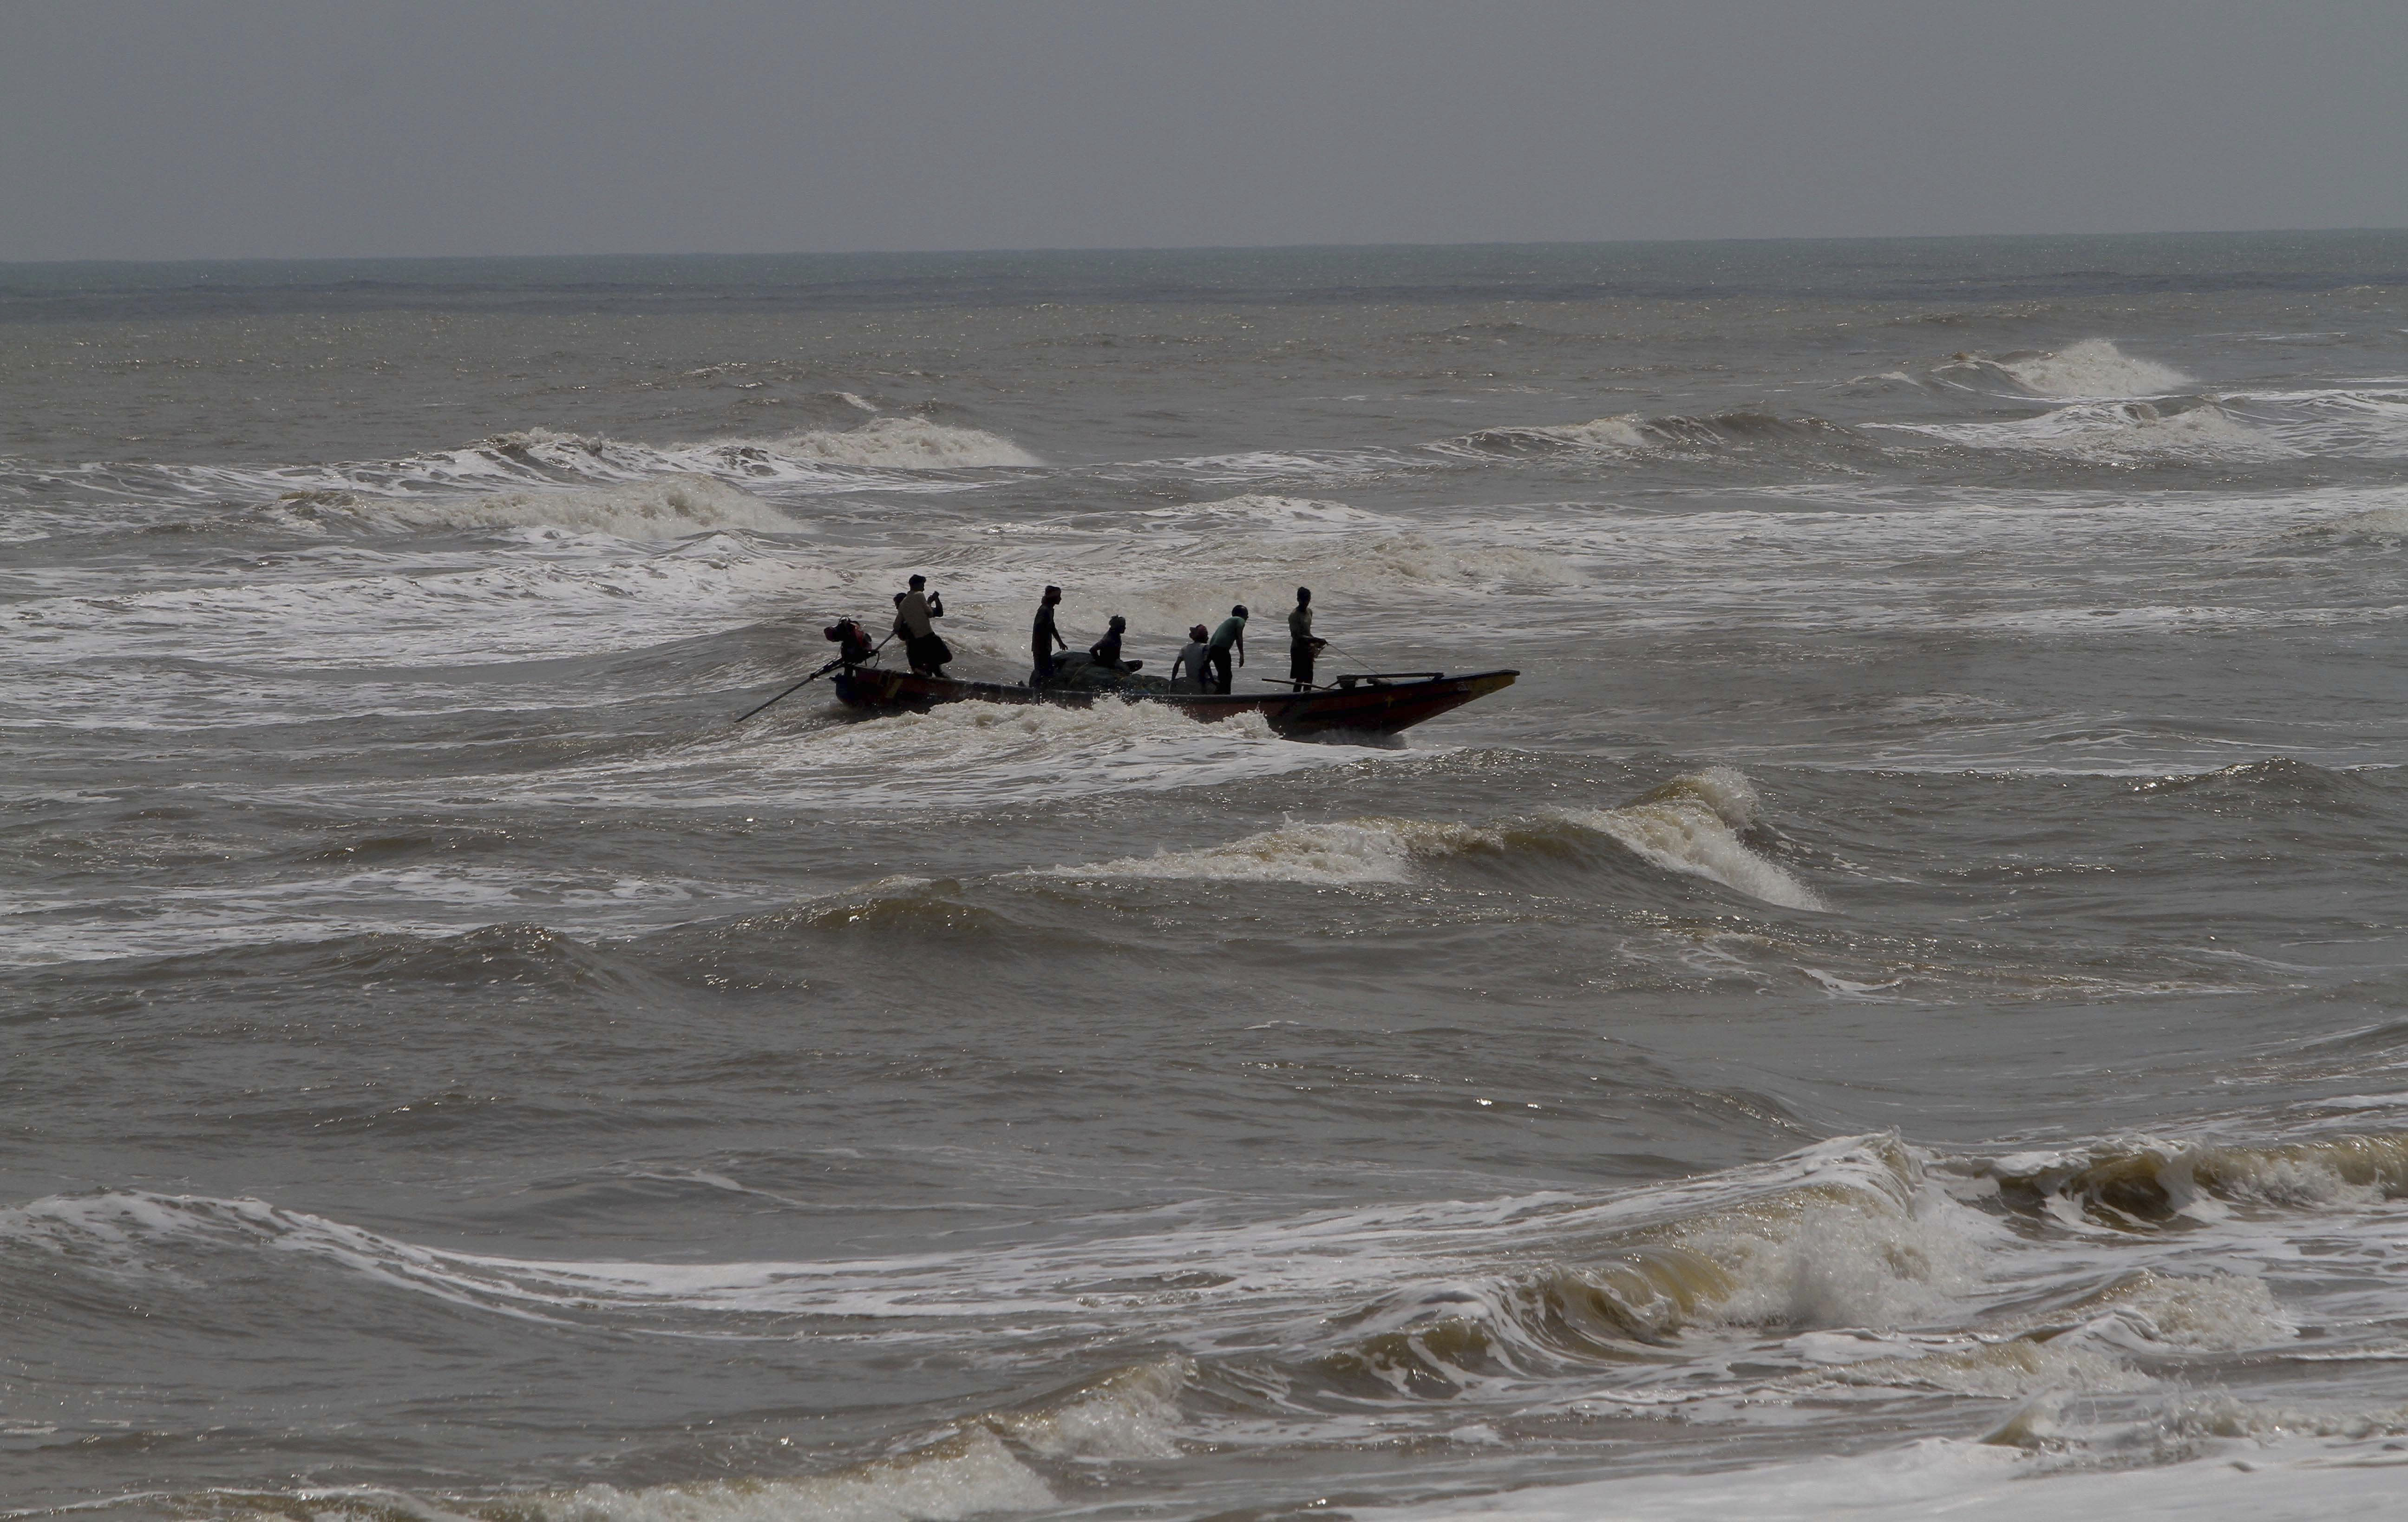 In this Wednesday, May 1, 2019 photo, Indian fishermen attempt to bring their boat ashore amid strong winds at Chandrabhaga beach in Puri district of eastern Odisha state, India. Hundreds of thousands of people were evacuated along India's eastern coast on Thursday as authorities braced for a cyclone moving through the Bay of Bengal that was forecast to bring extremely severe wind and rain. (AP Photo)